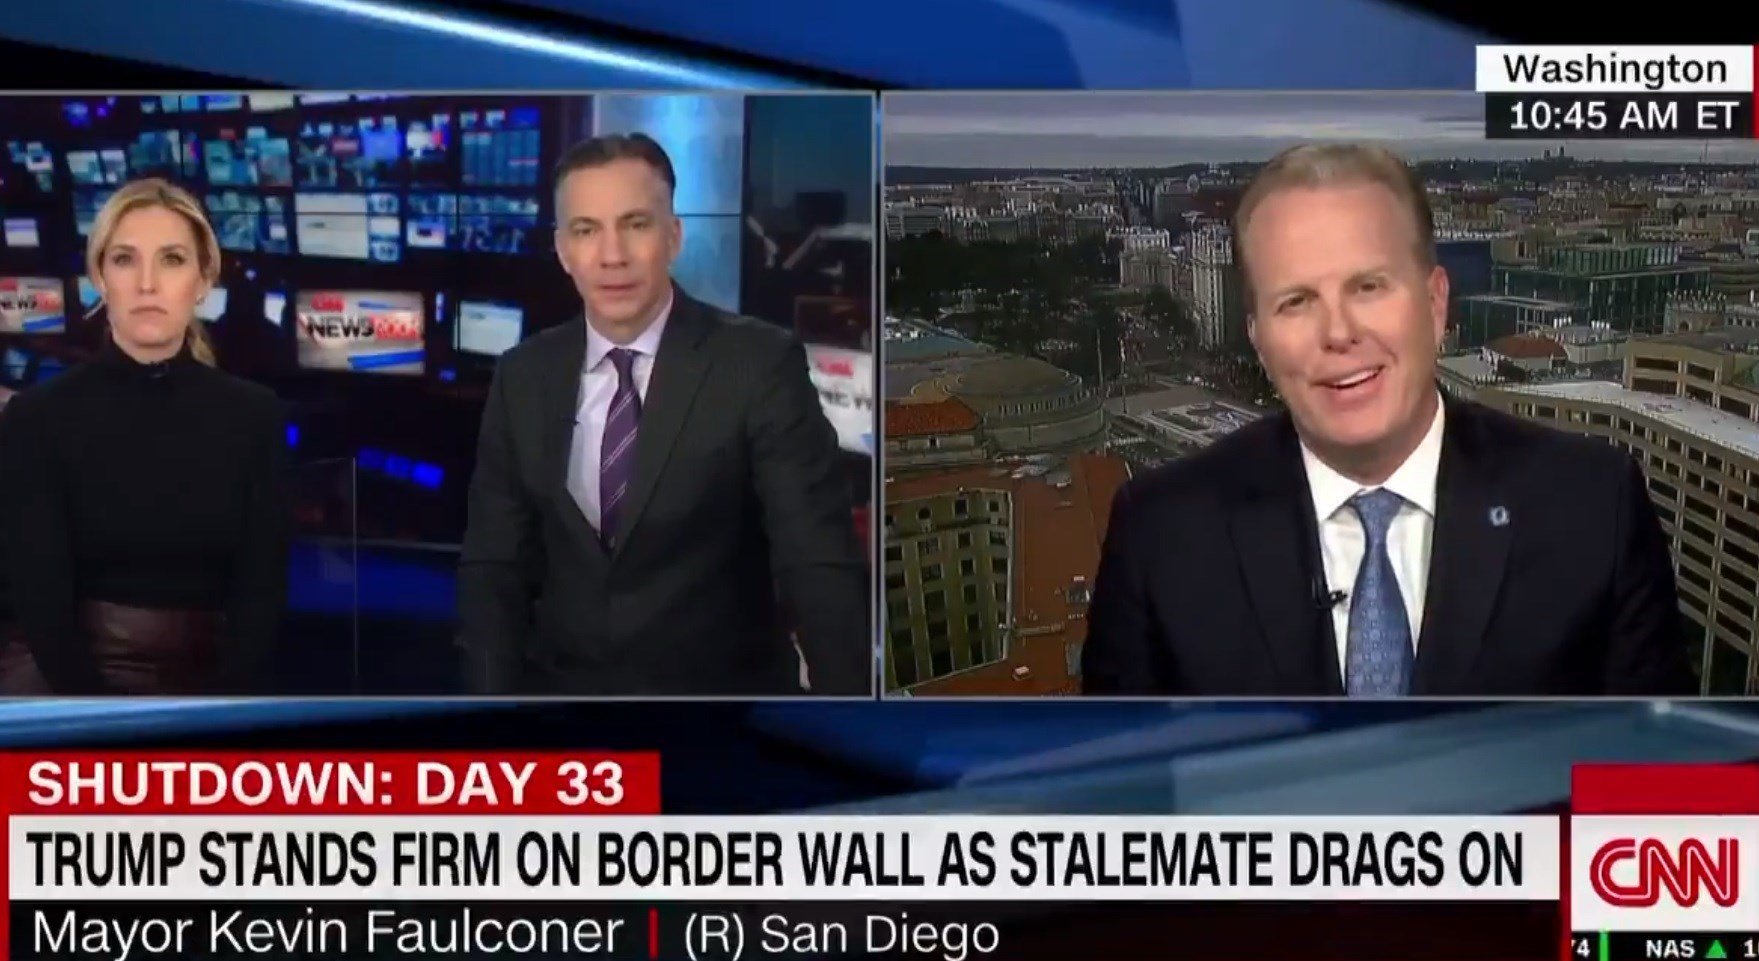 Mayor Faulconer stresses the need to reopen the government during CNN interview